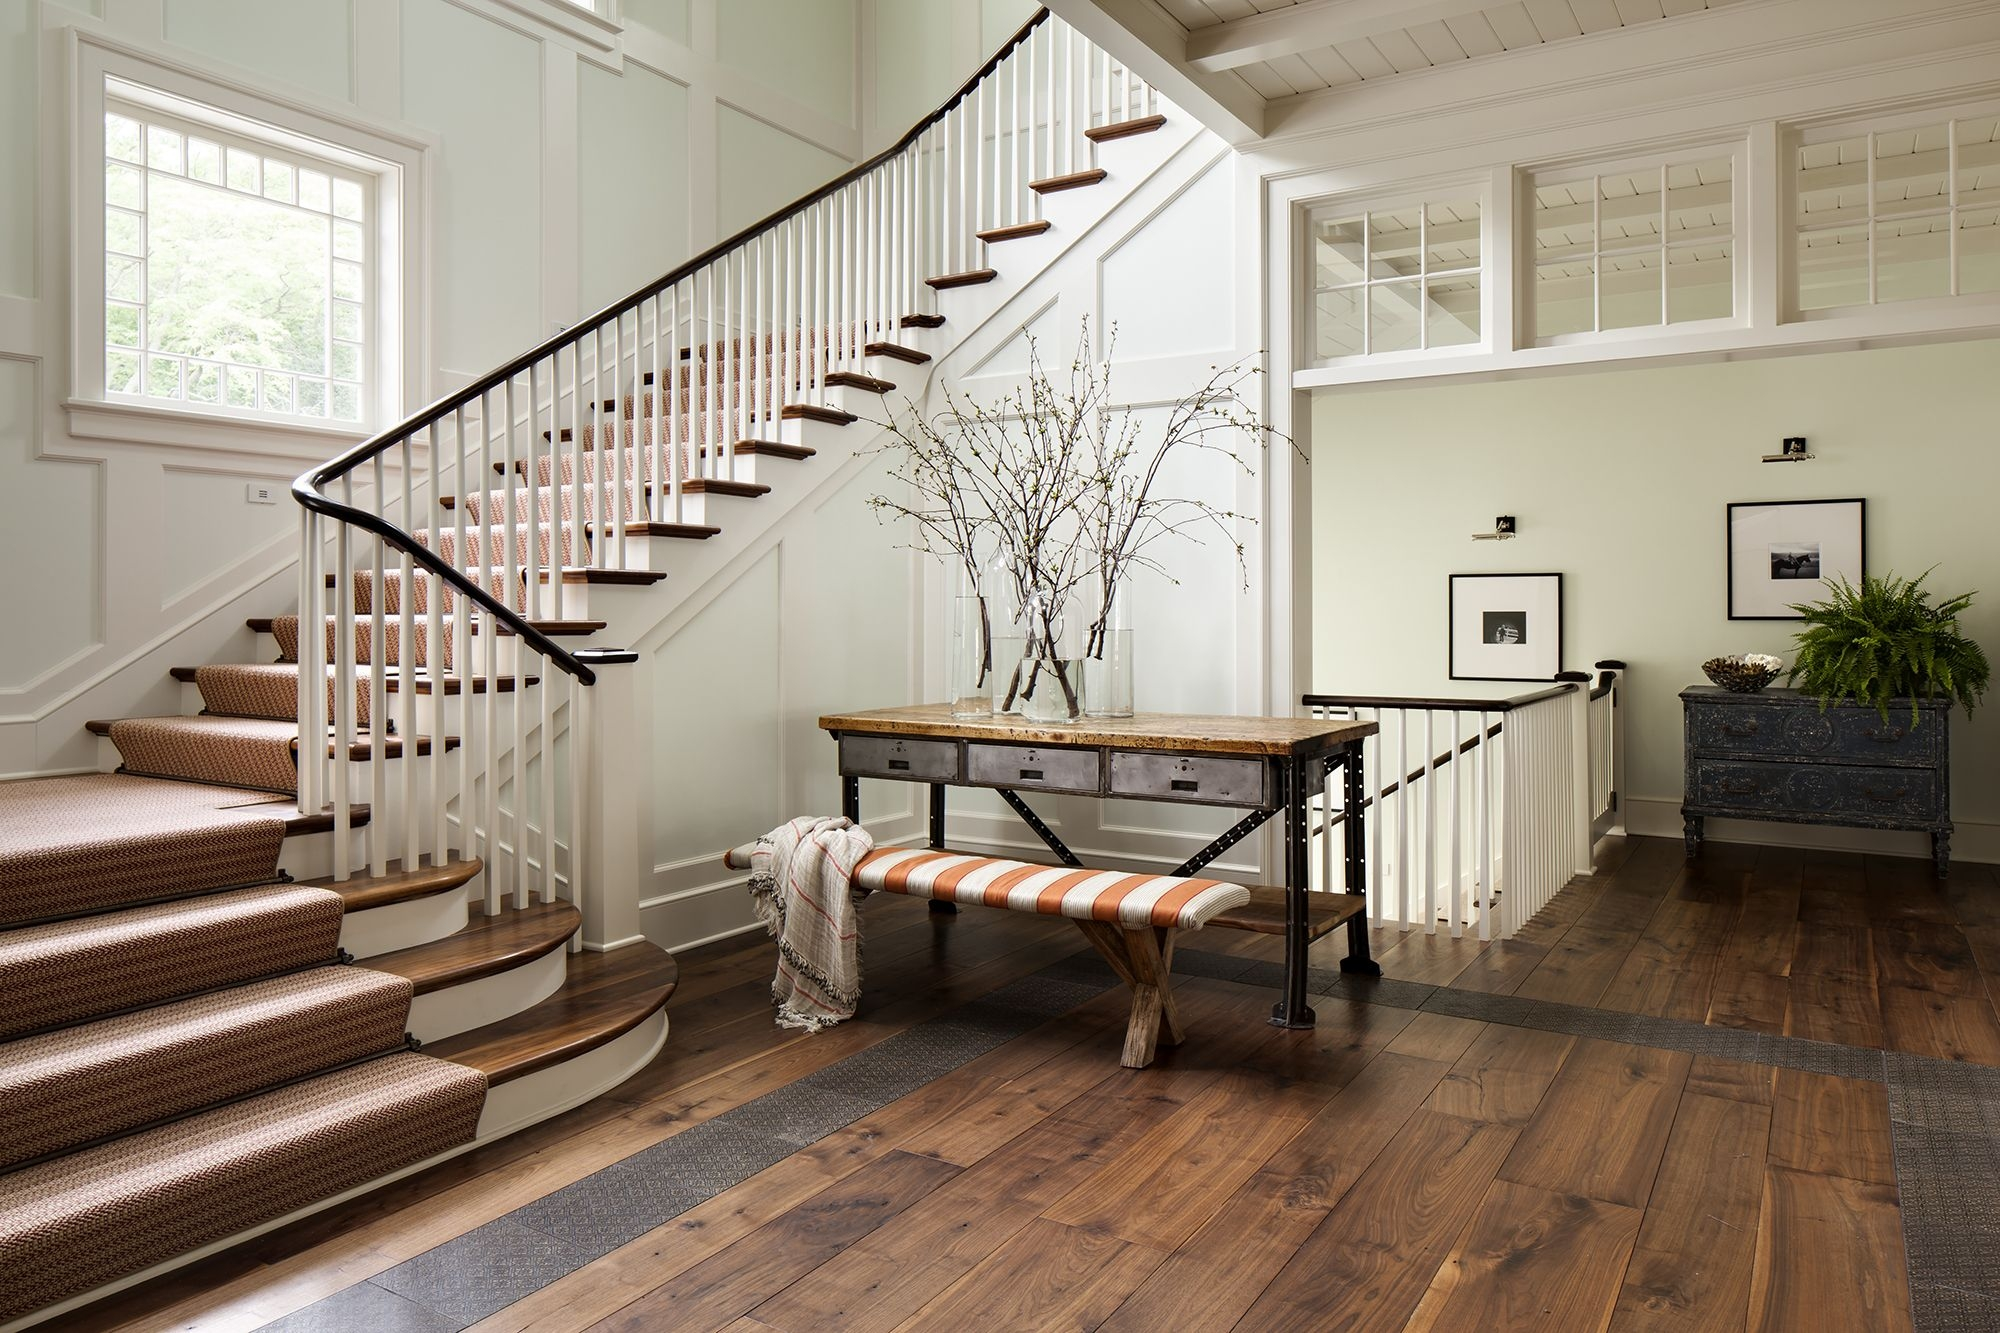 27 Stylish Staircase Decorating Ideas How To Decorate Stairways | Pop Design For Stairs | Ceiling | Living Room | Front Area | Inside | Granite Front Elevation